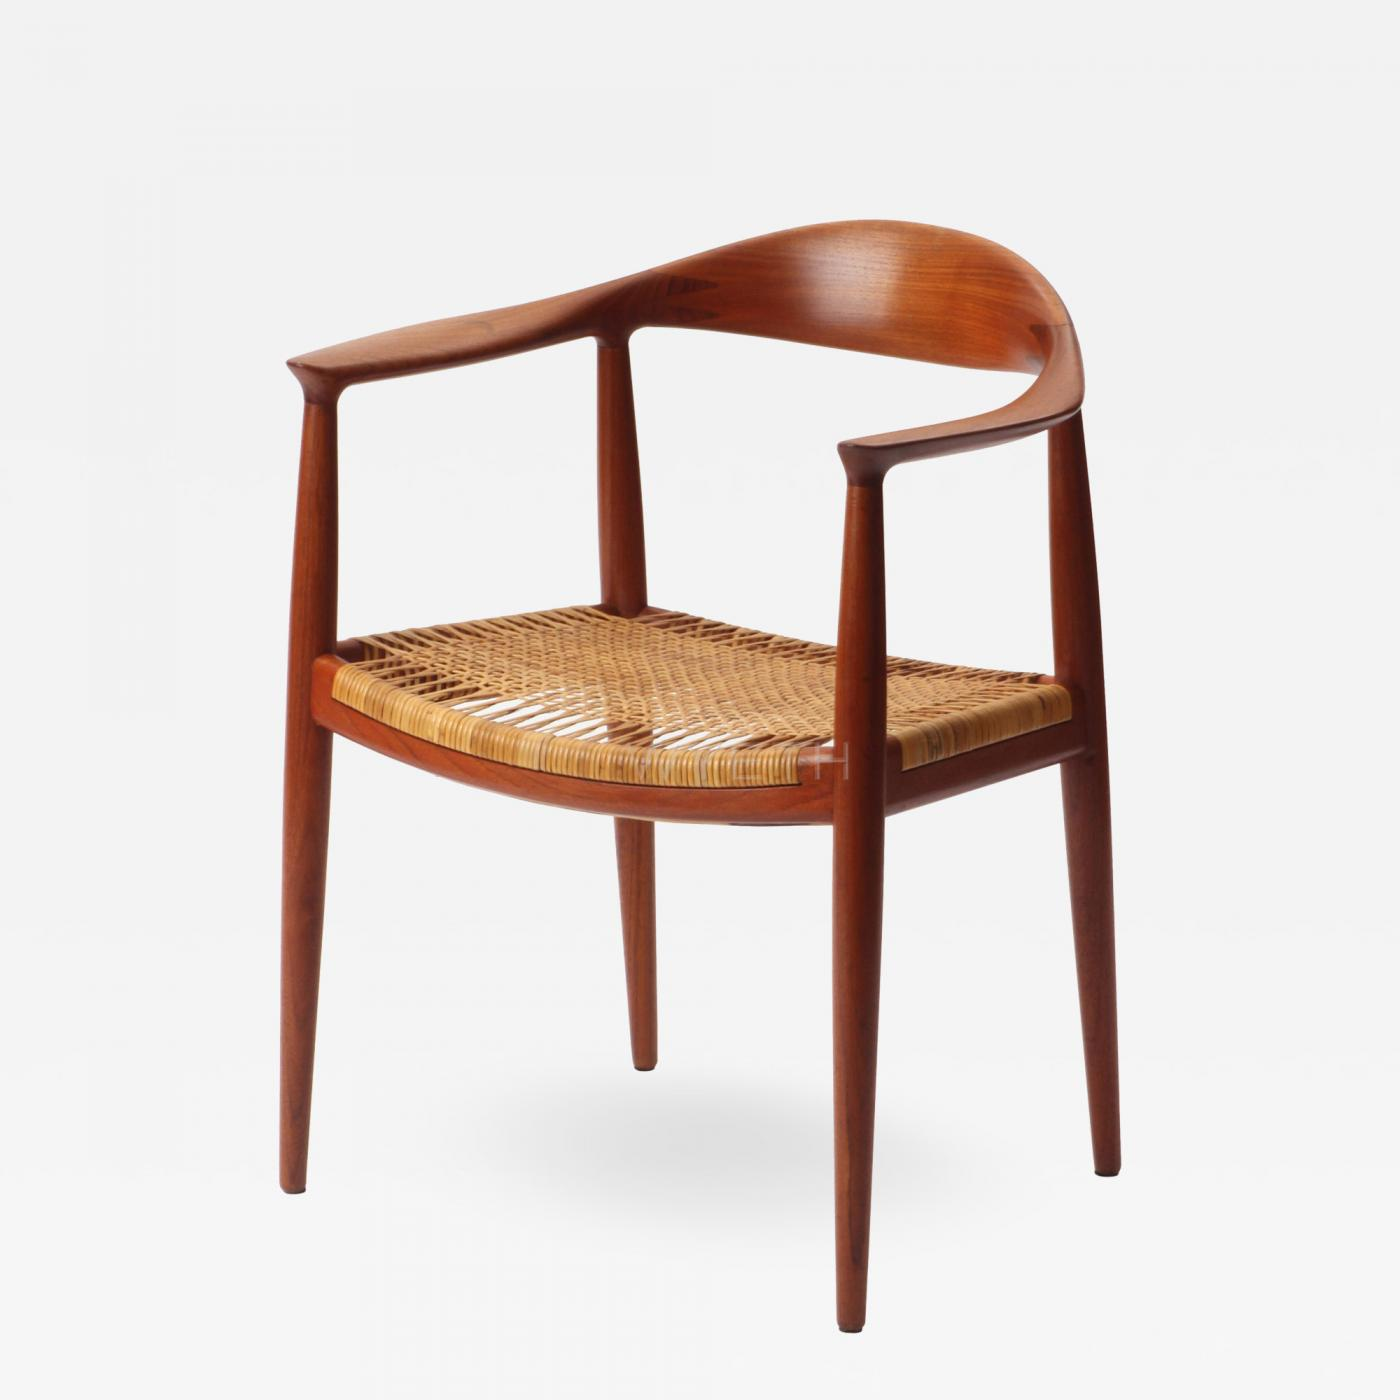 Hans Wegner Chair : hans wegner 39 the chair 39 a round chair in teak with a ~ Watch28wear.com Haus und Dekorationen